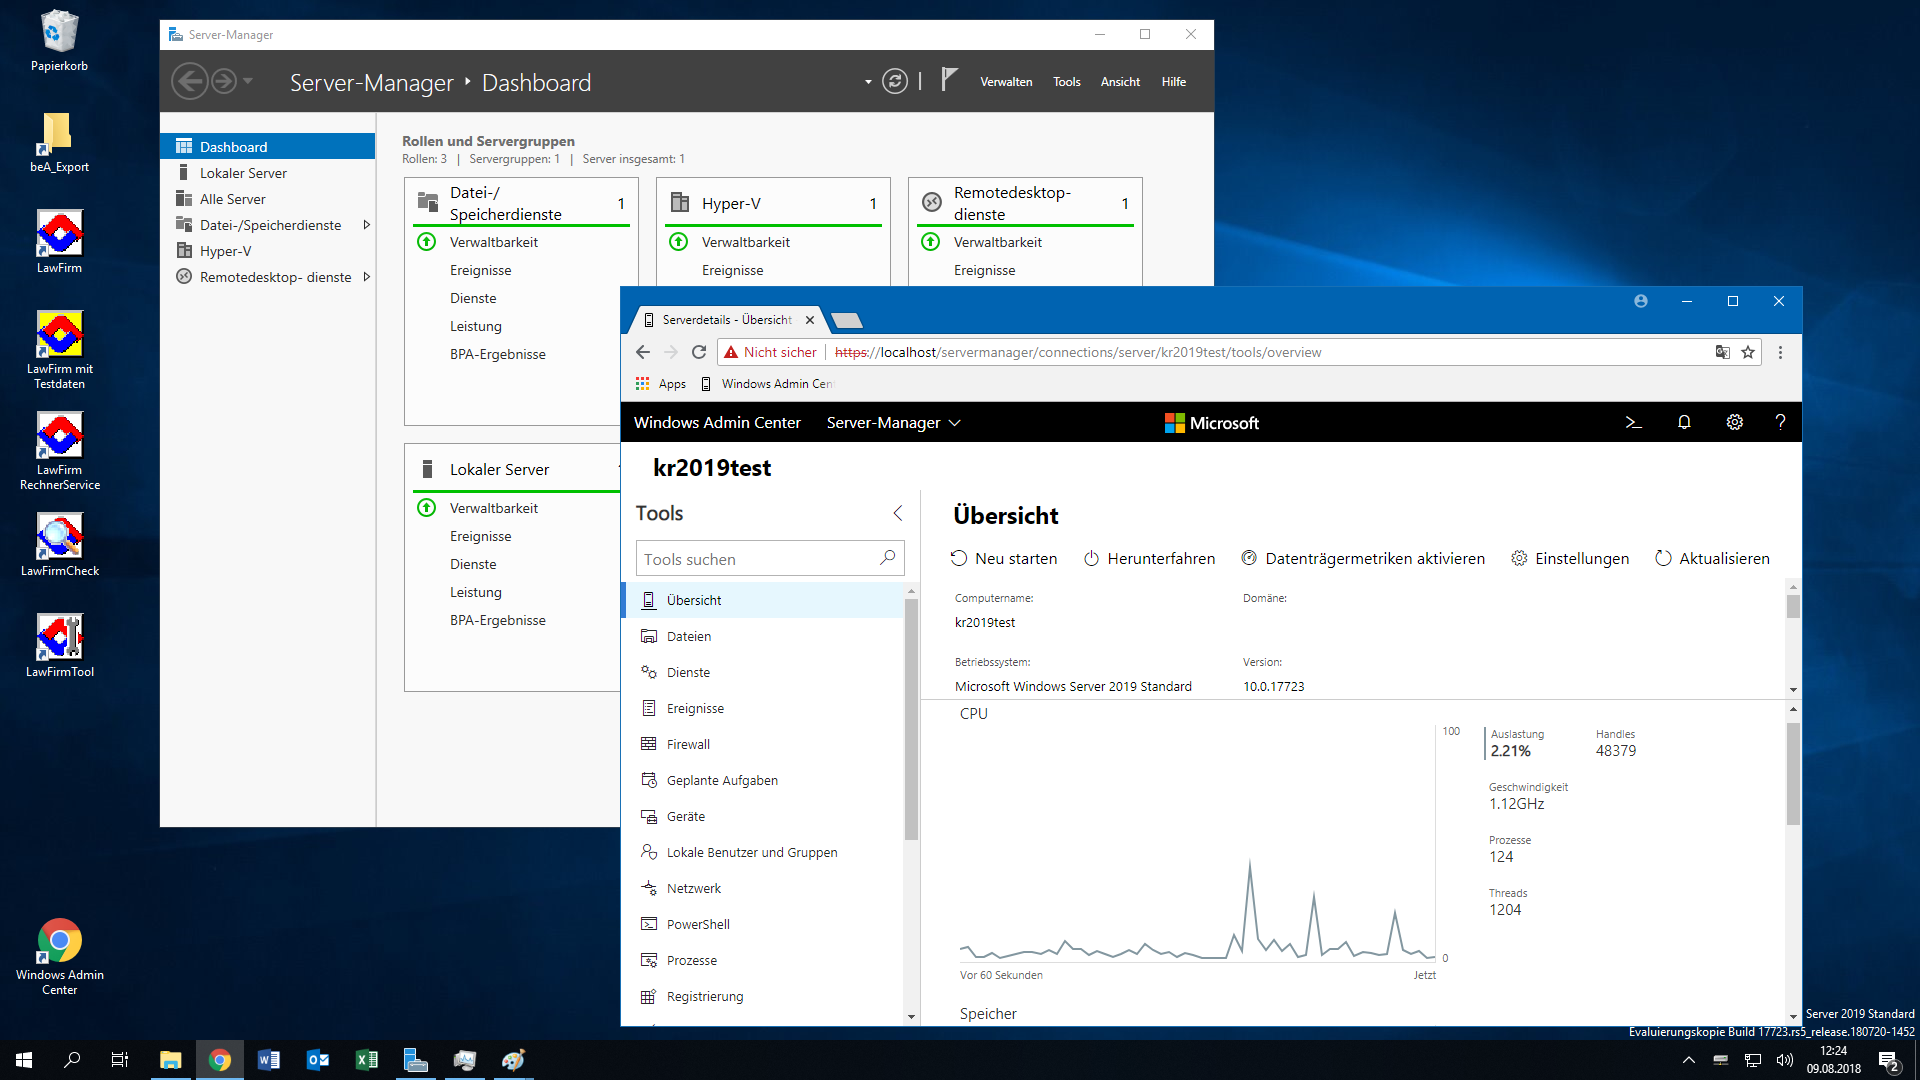 Windows® Server 2019 Desktop mit neuem Windows Admin Center + LawFirm® Symbolen